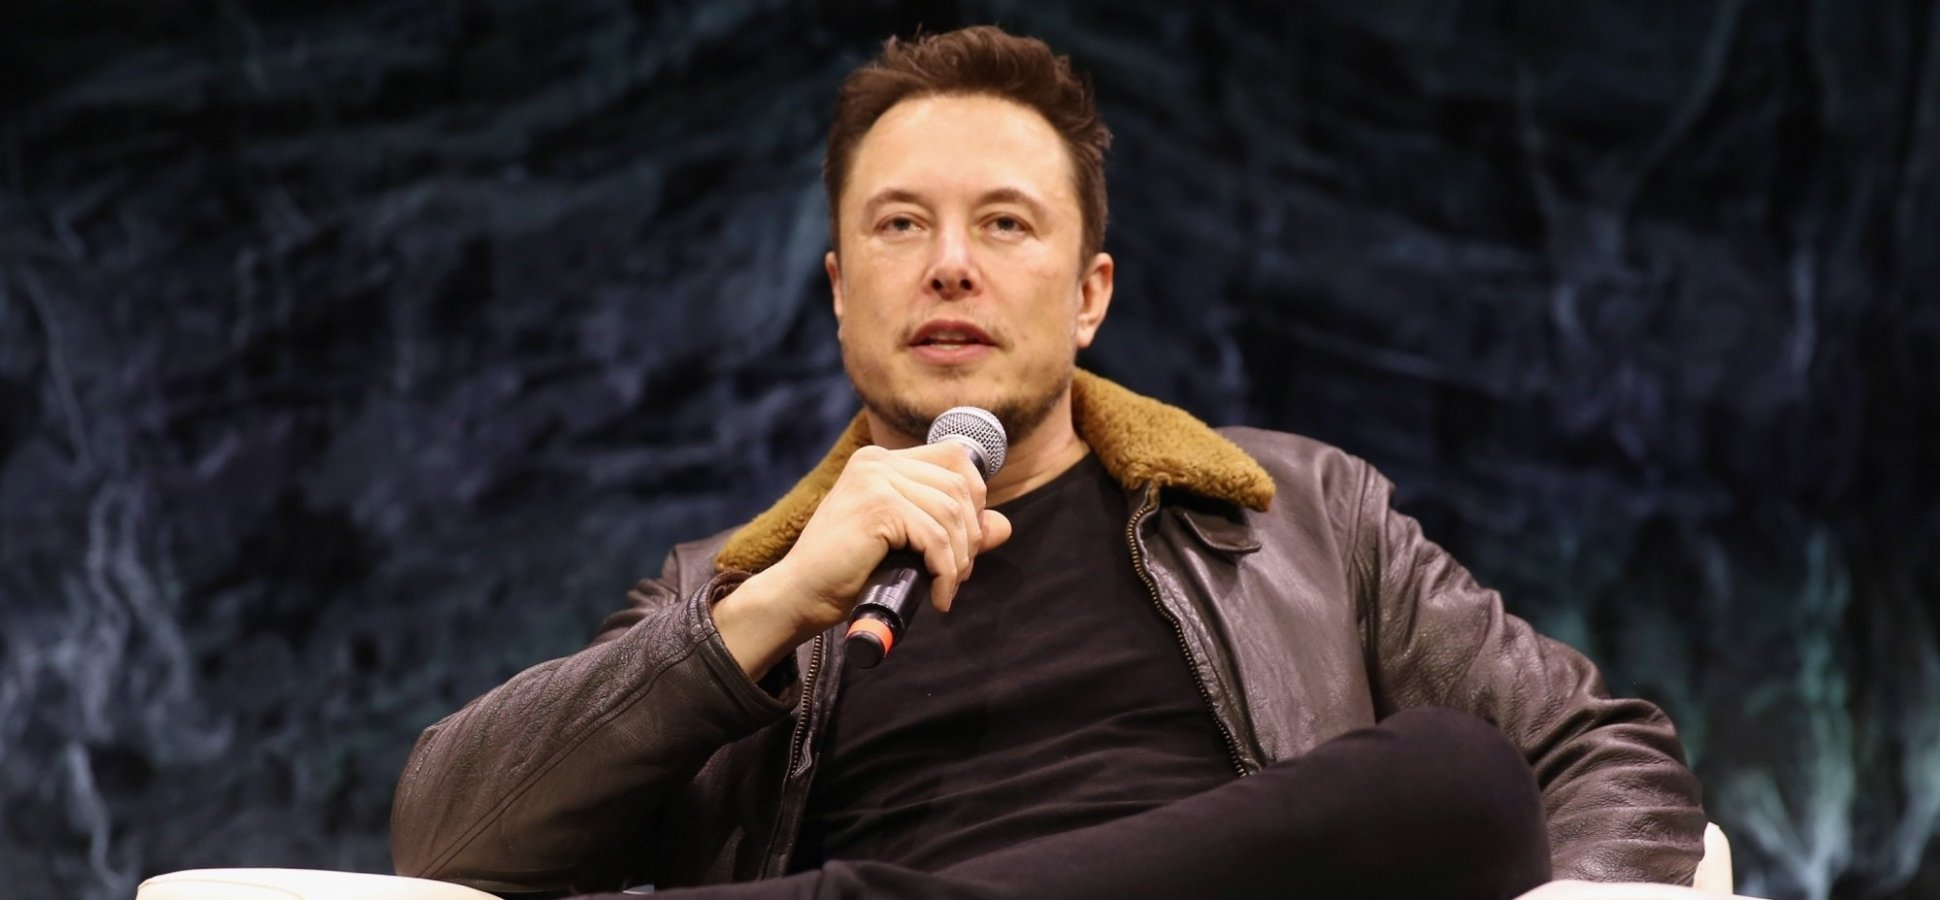 Elon Musk Once Gave Some Surprising Business Advice. 4 Years Later, It's Clearly Brilliant